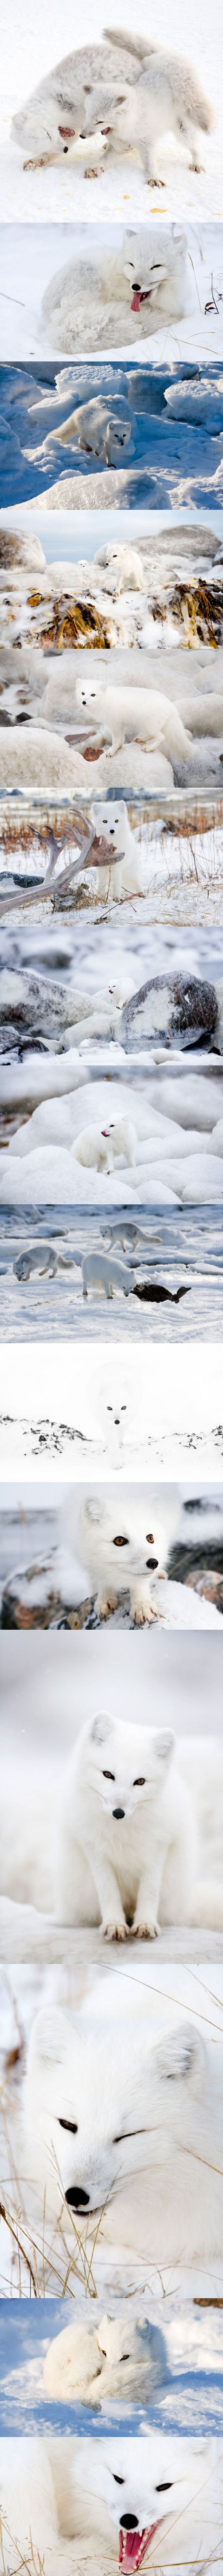 Artic Fox Play-Fight. Picture: Anna Henly / Barcroft USA